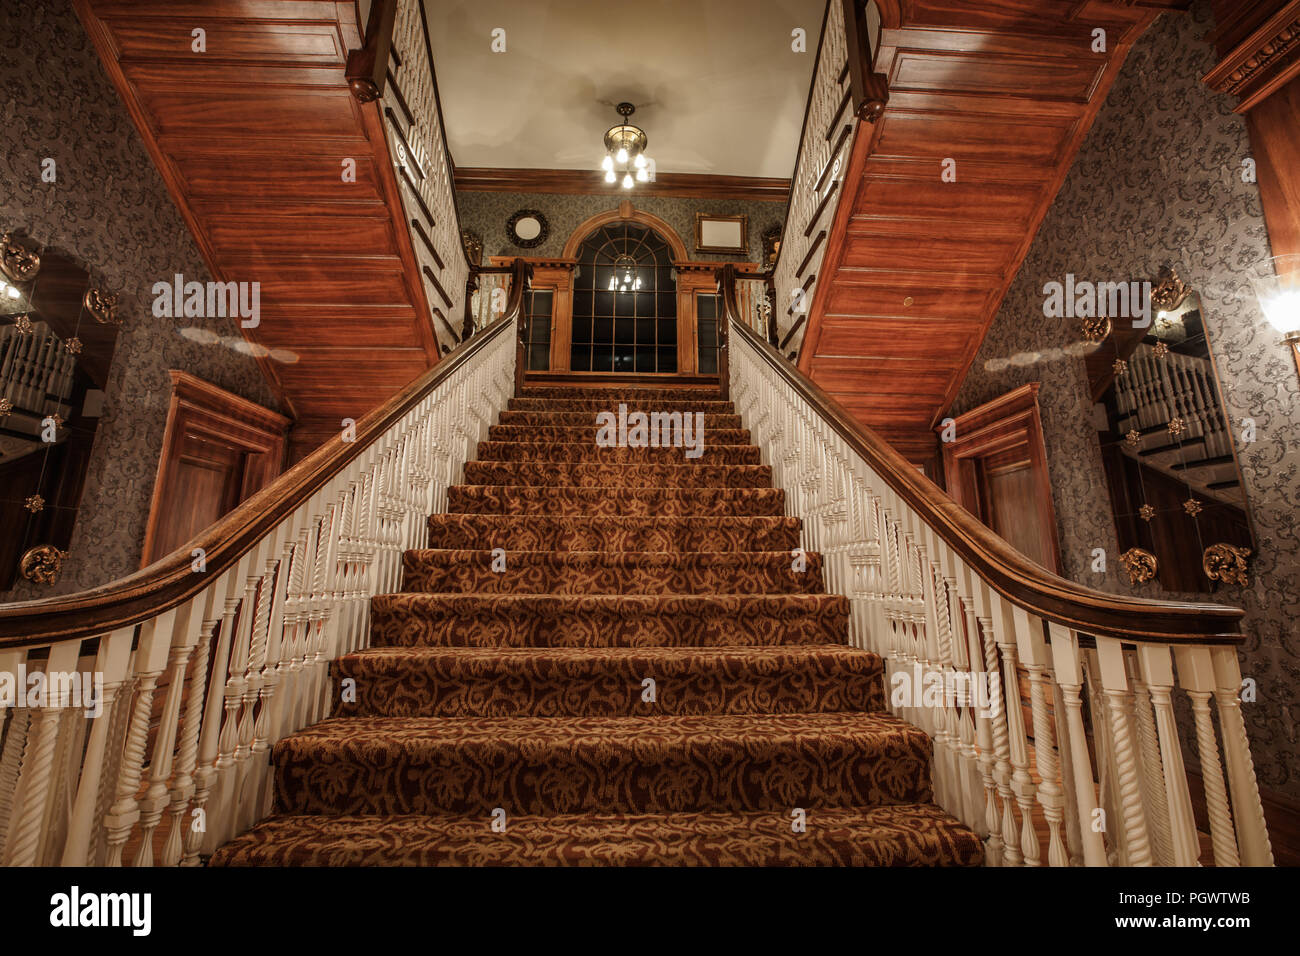 Stairway in the historic Stanley Hotel in Estes Park, Colorado. The Hotel was noted to be the inspiration for Stephen King's novel 'The Shining' - Stock Image